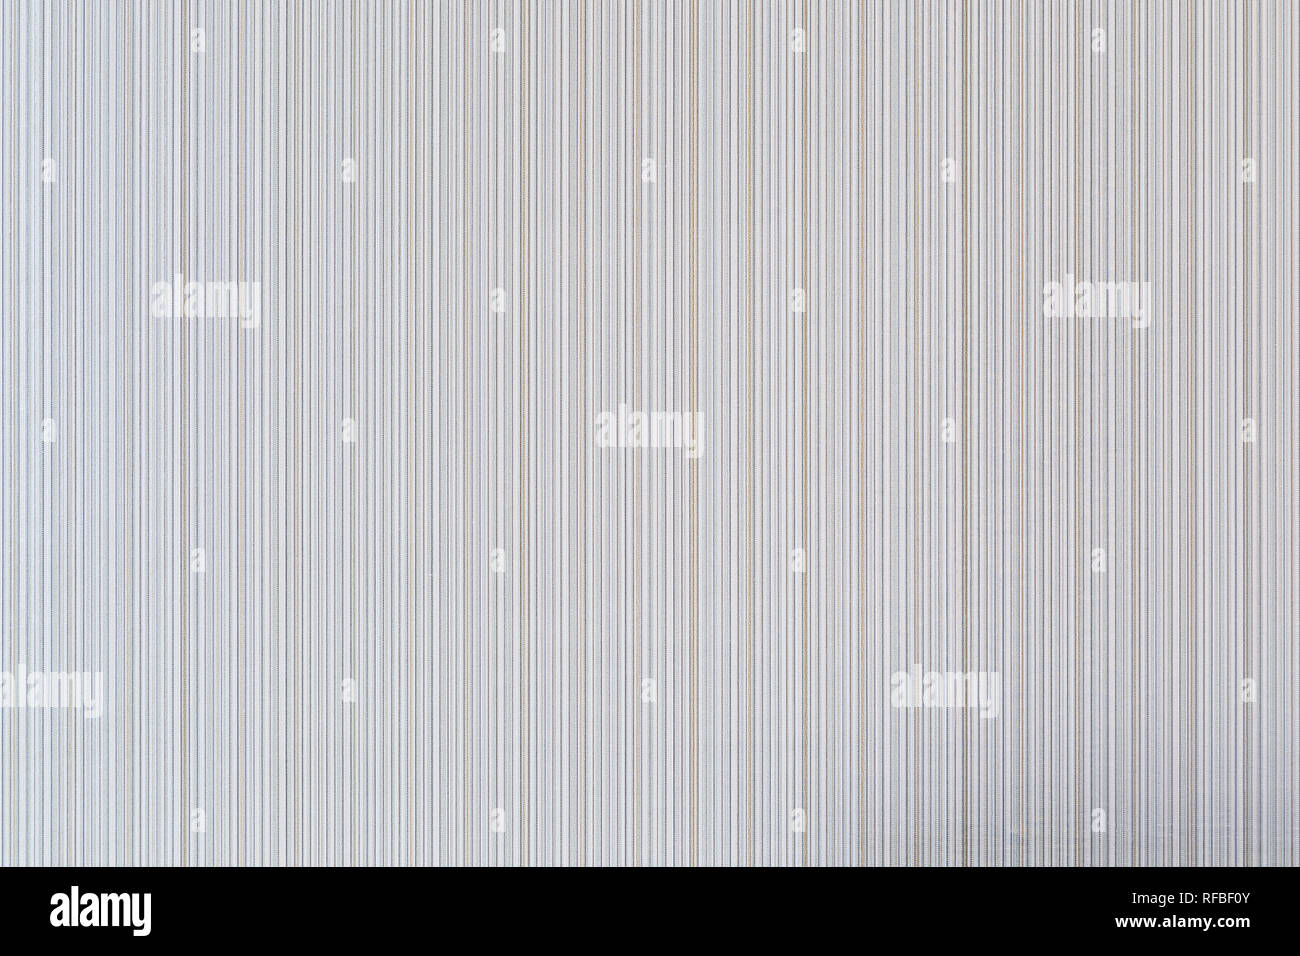 High resolution full frame background of pale and beige colored striped wallpaper. Stock Photo